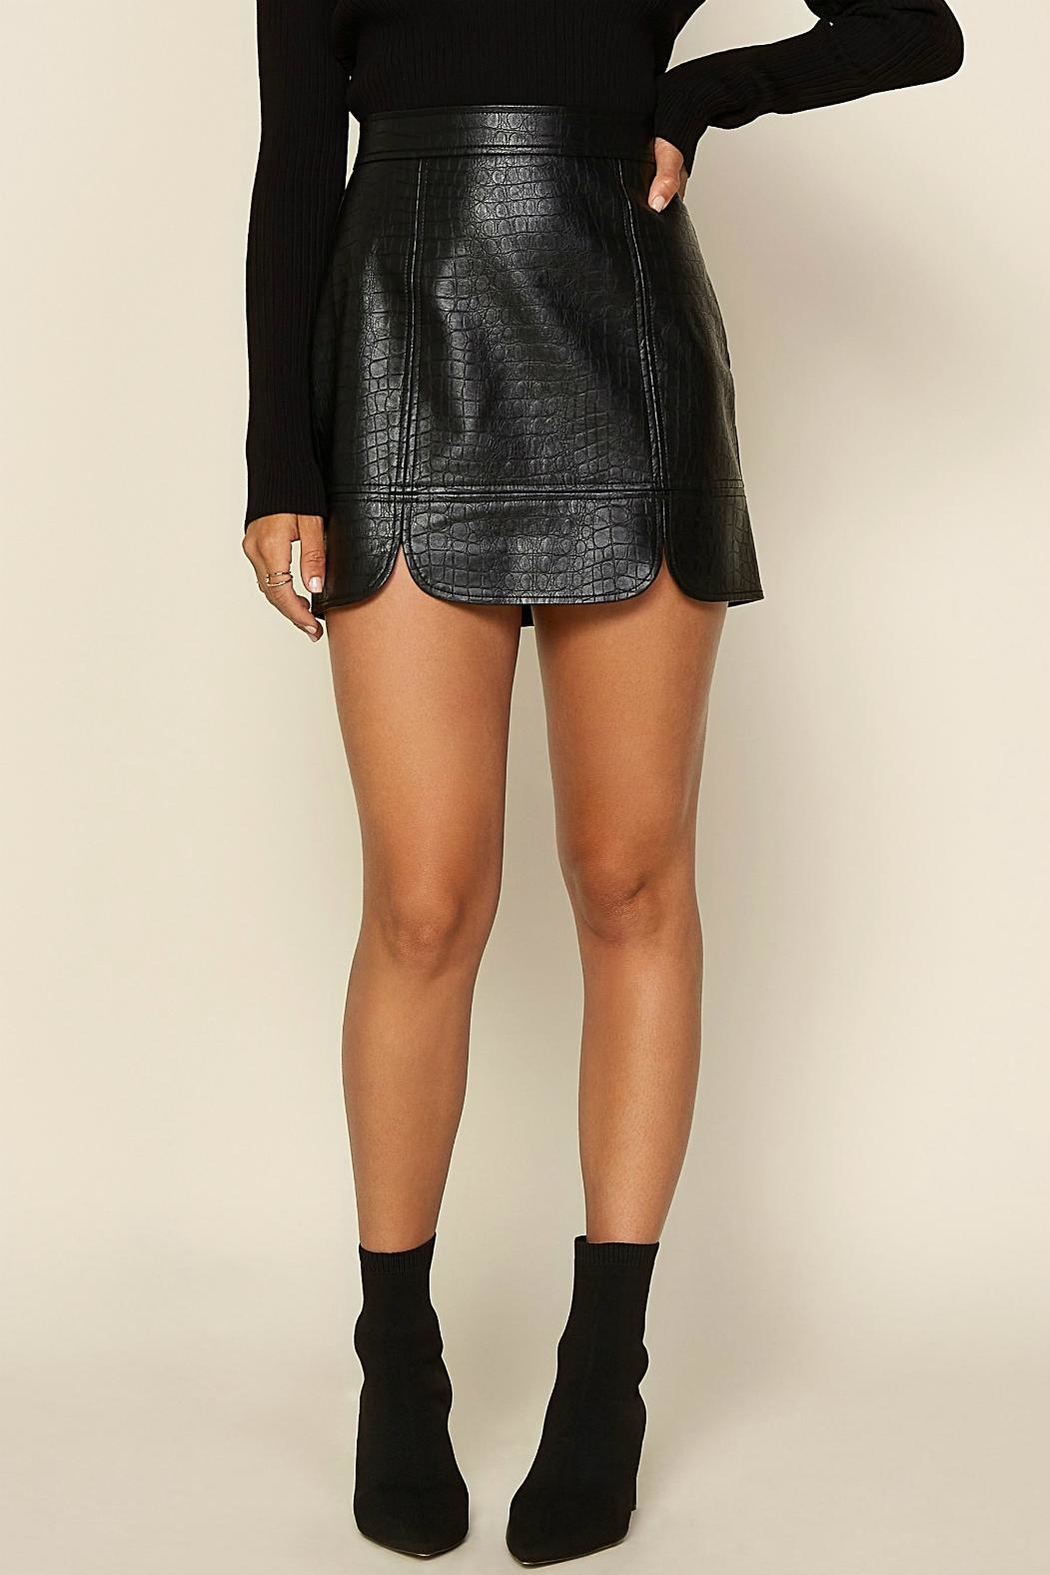 Pretty Little Things Crocodile Leather Skirt - Main Image